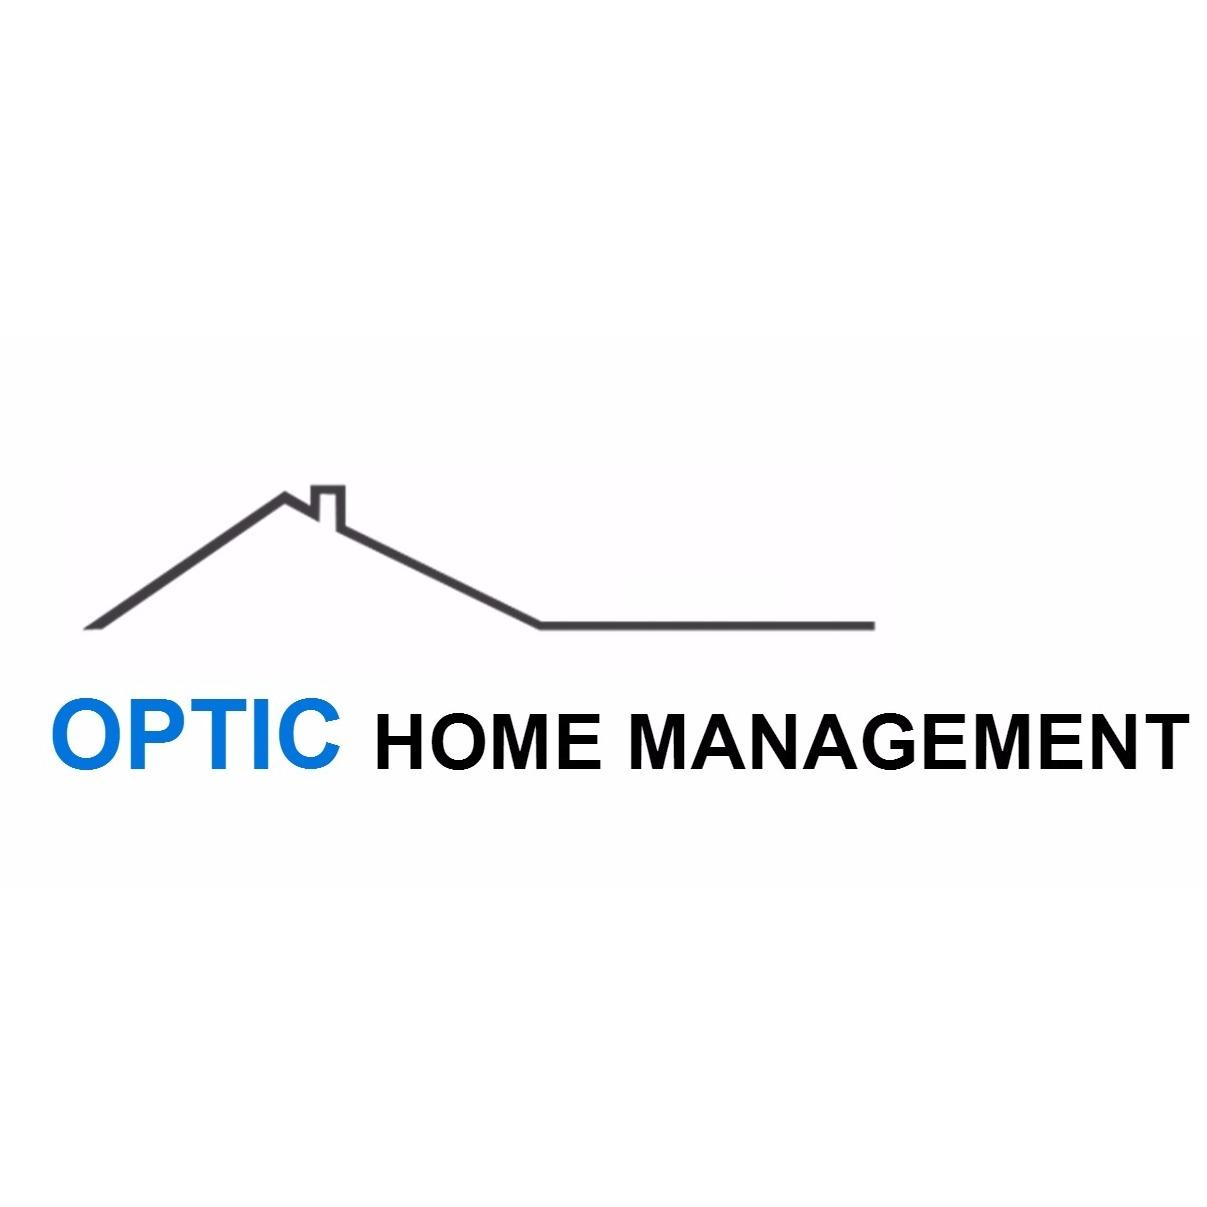 Optic Home Management - Deerfield, IL 60015 - (312)767-8427 | ShowMeLocal.com